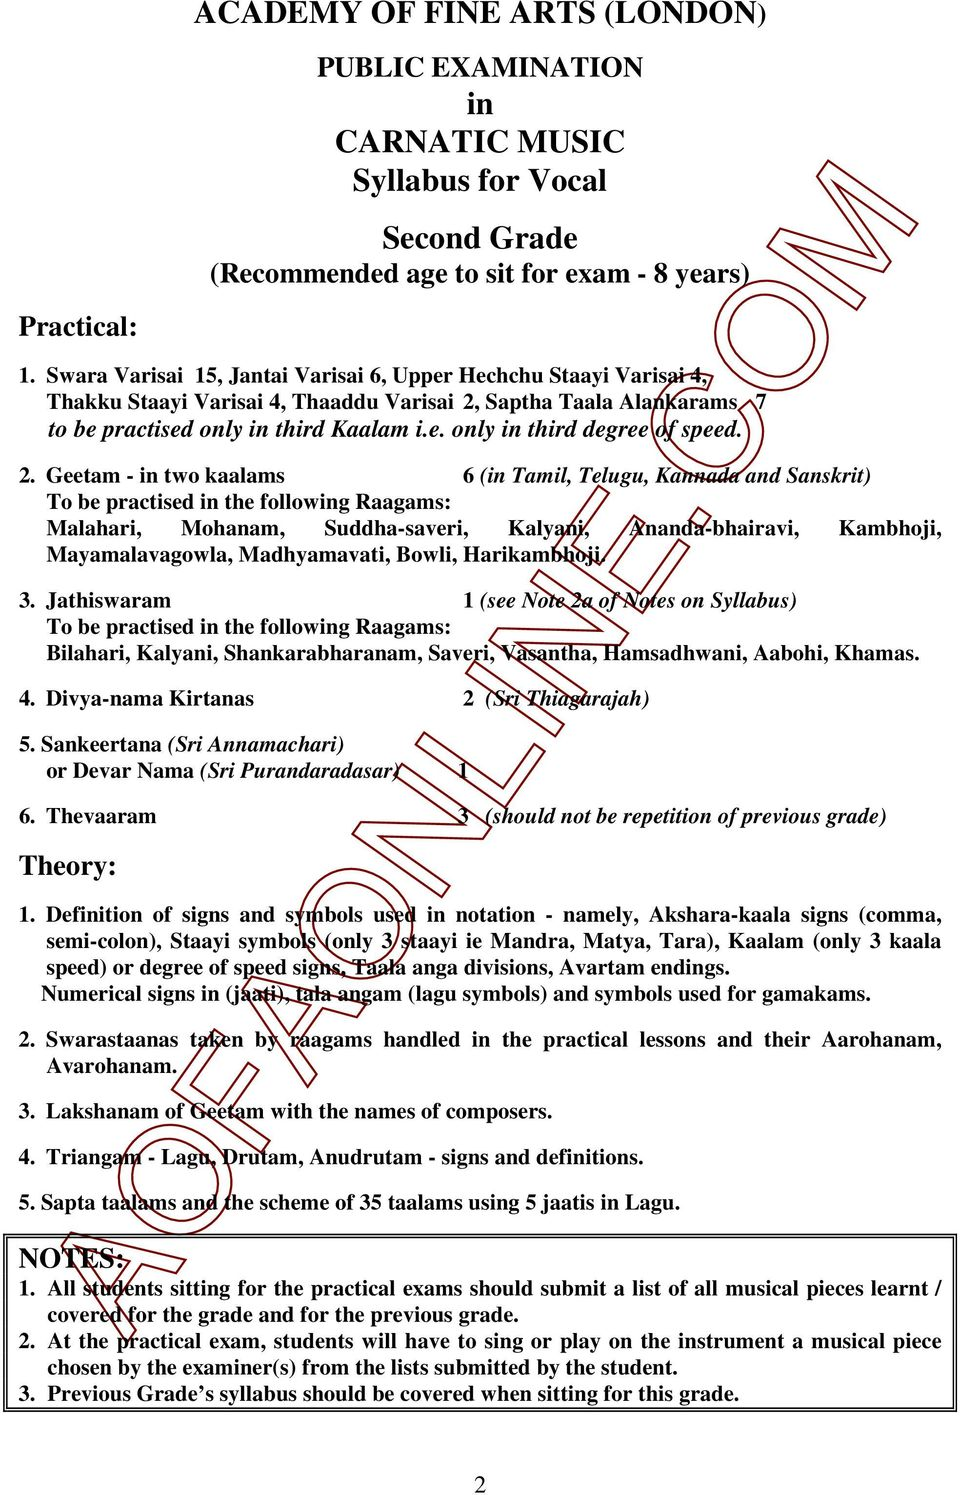 Academy Of Fine Arts London First Grade B Recommended Age To Sit For Exam 7 Years Practical Examination Only Pdf Free Download